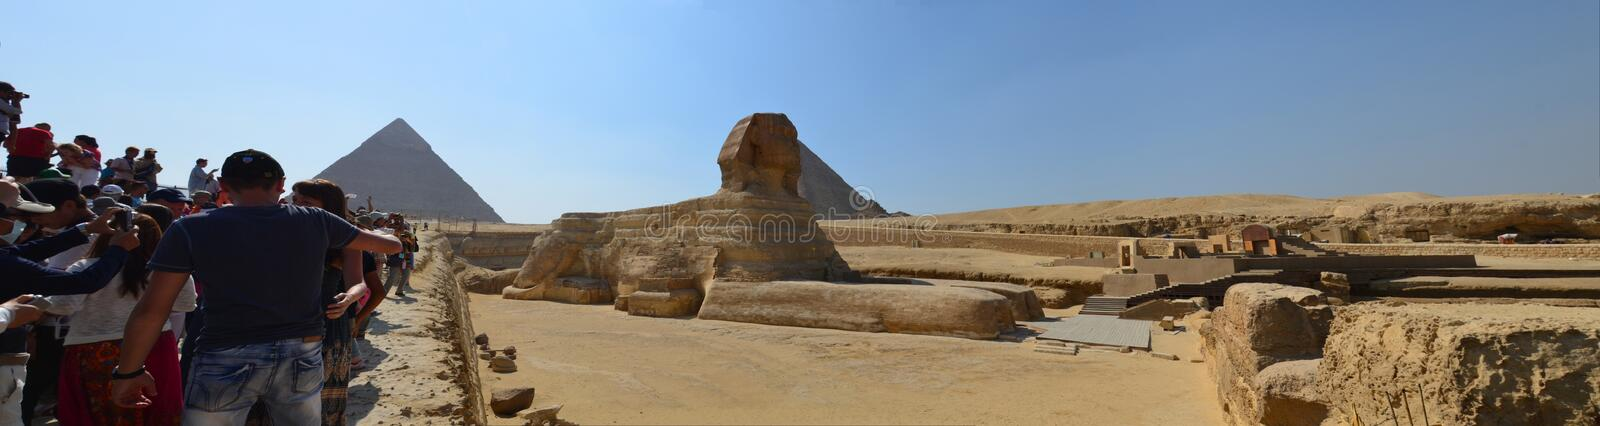 Beautiful profile of the Great Sphinx royalty free stock photo